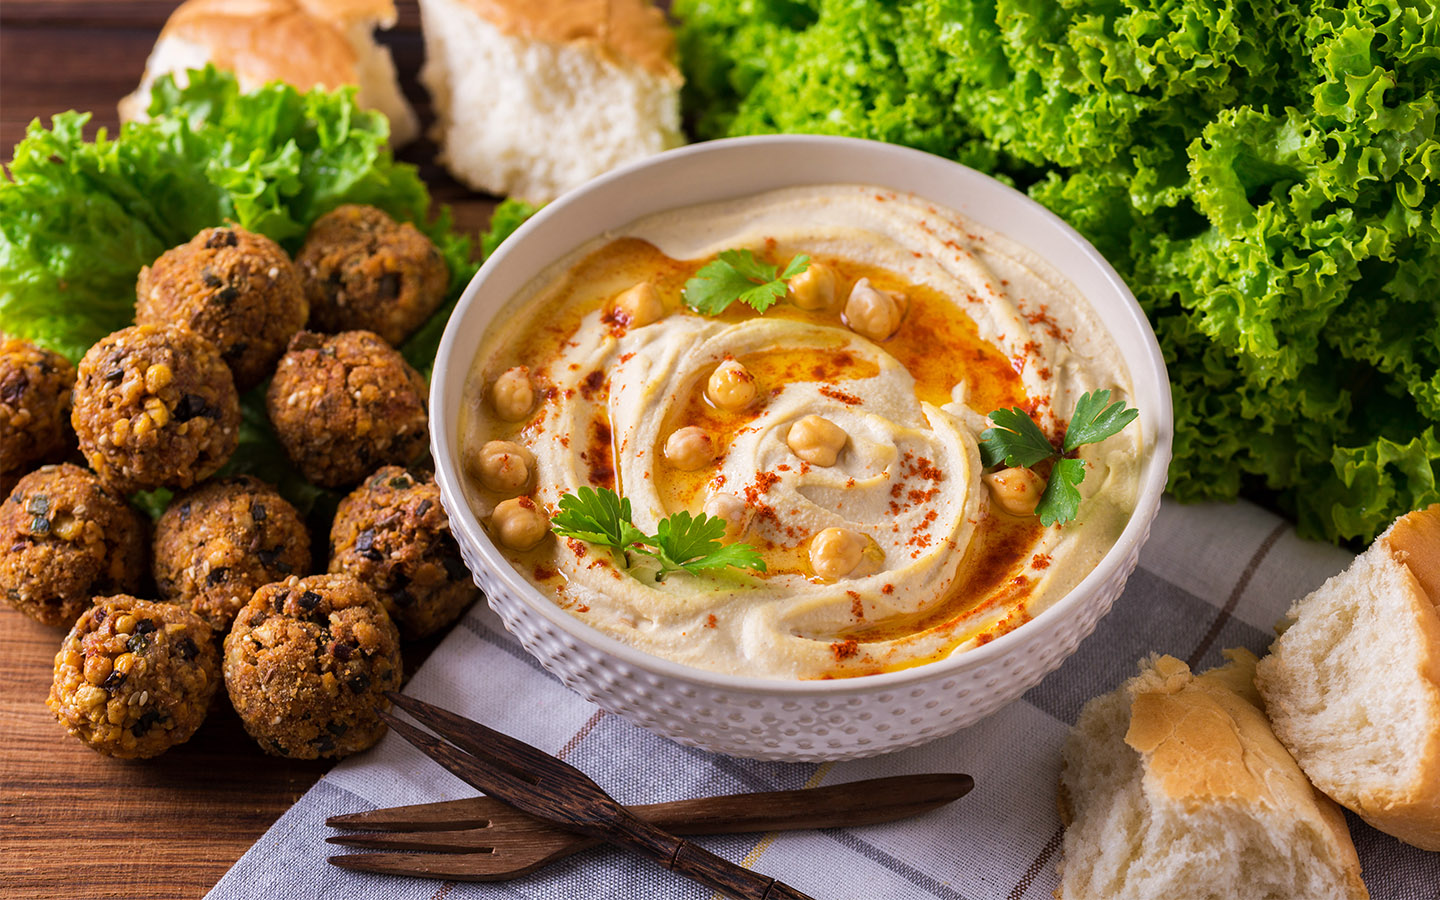 Mir Amin is one of the Best restaurant serving Hummus in Dubai